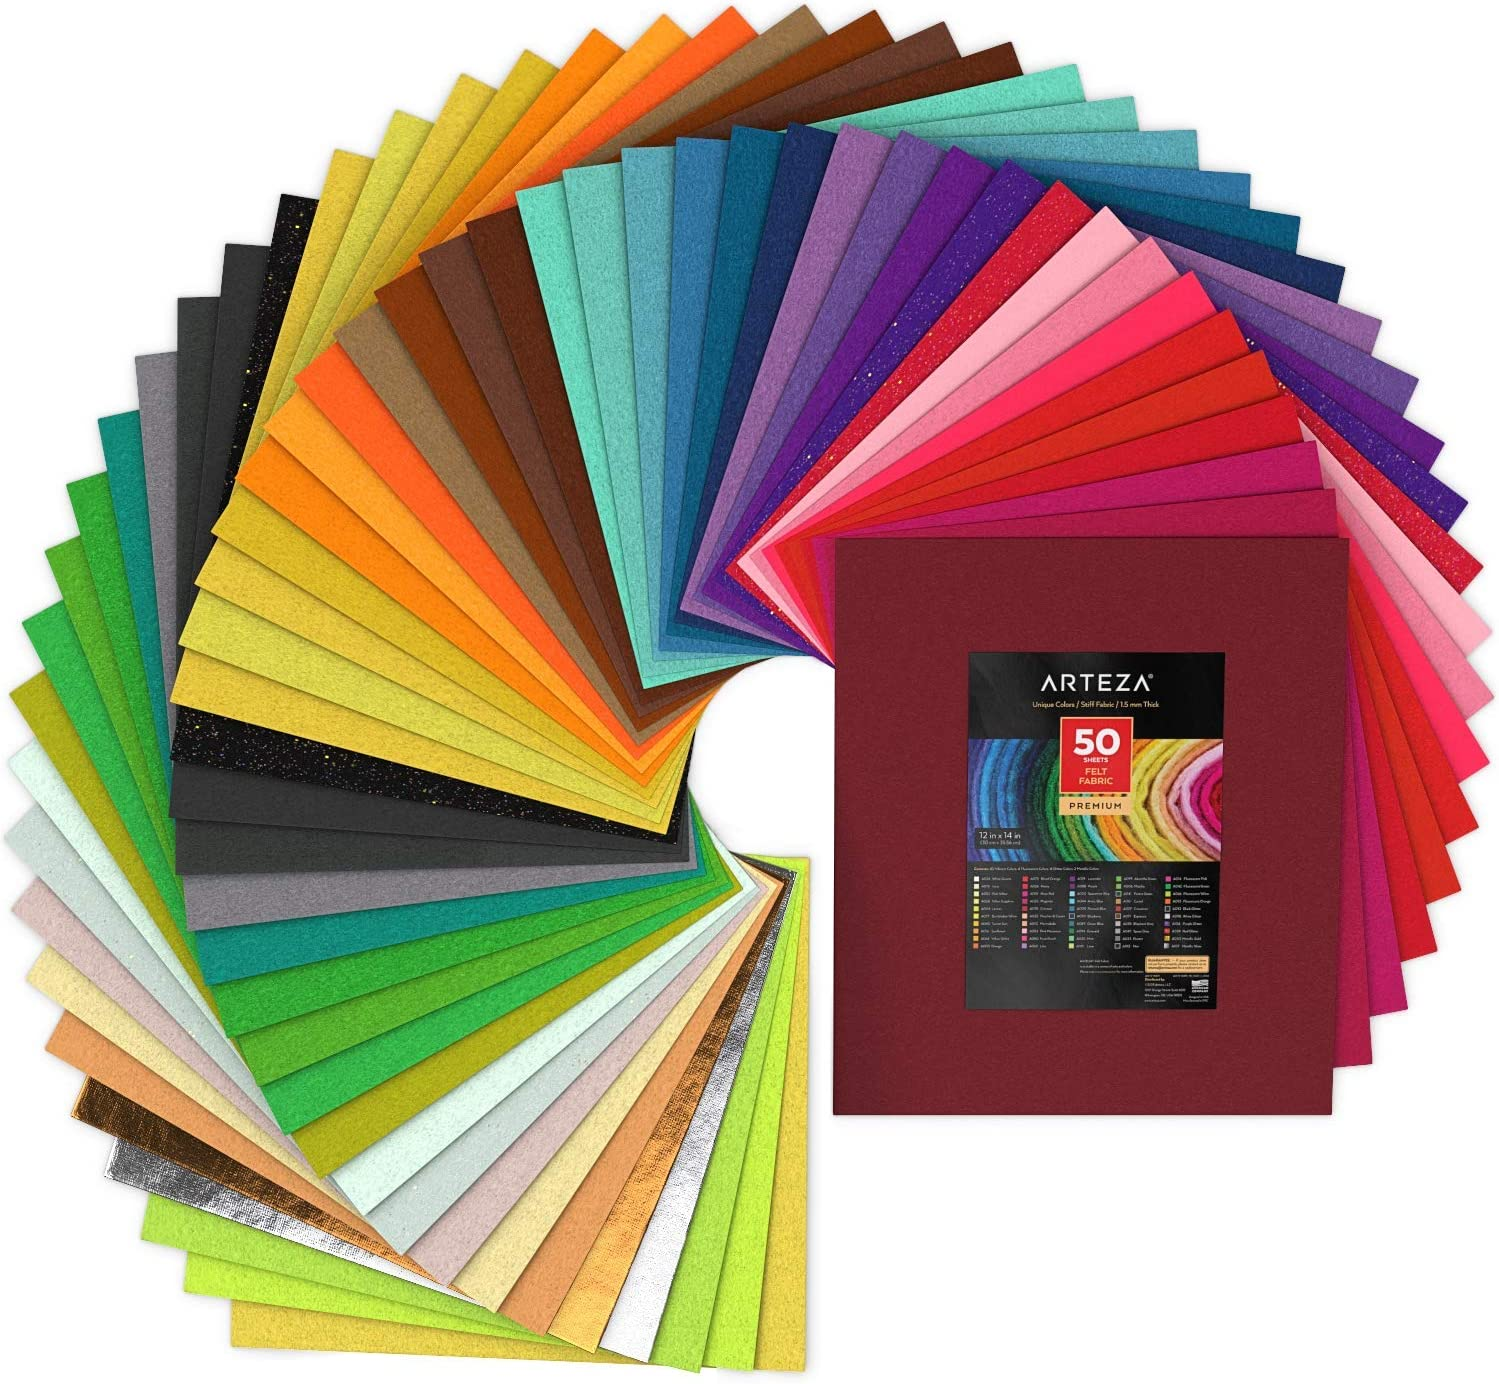 Arteza Felt Fabric Sheets Set of 50 x Colors Sales for 35% OFF sale Inches Ass 12 14